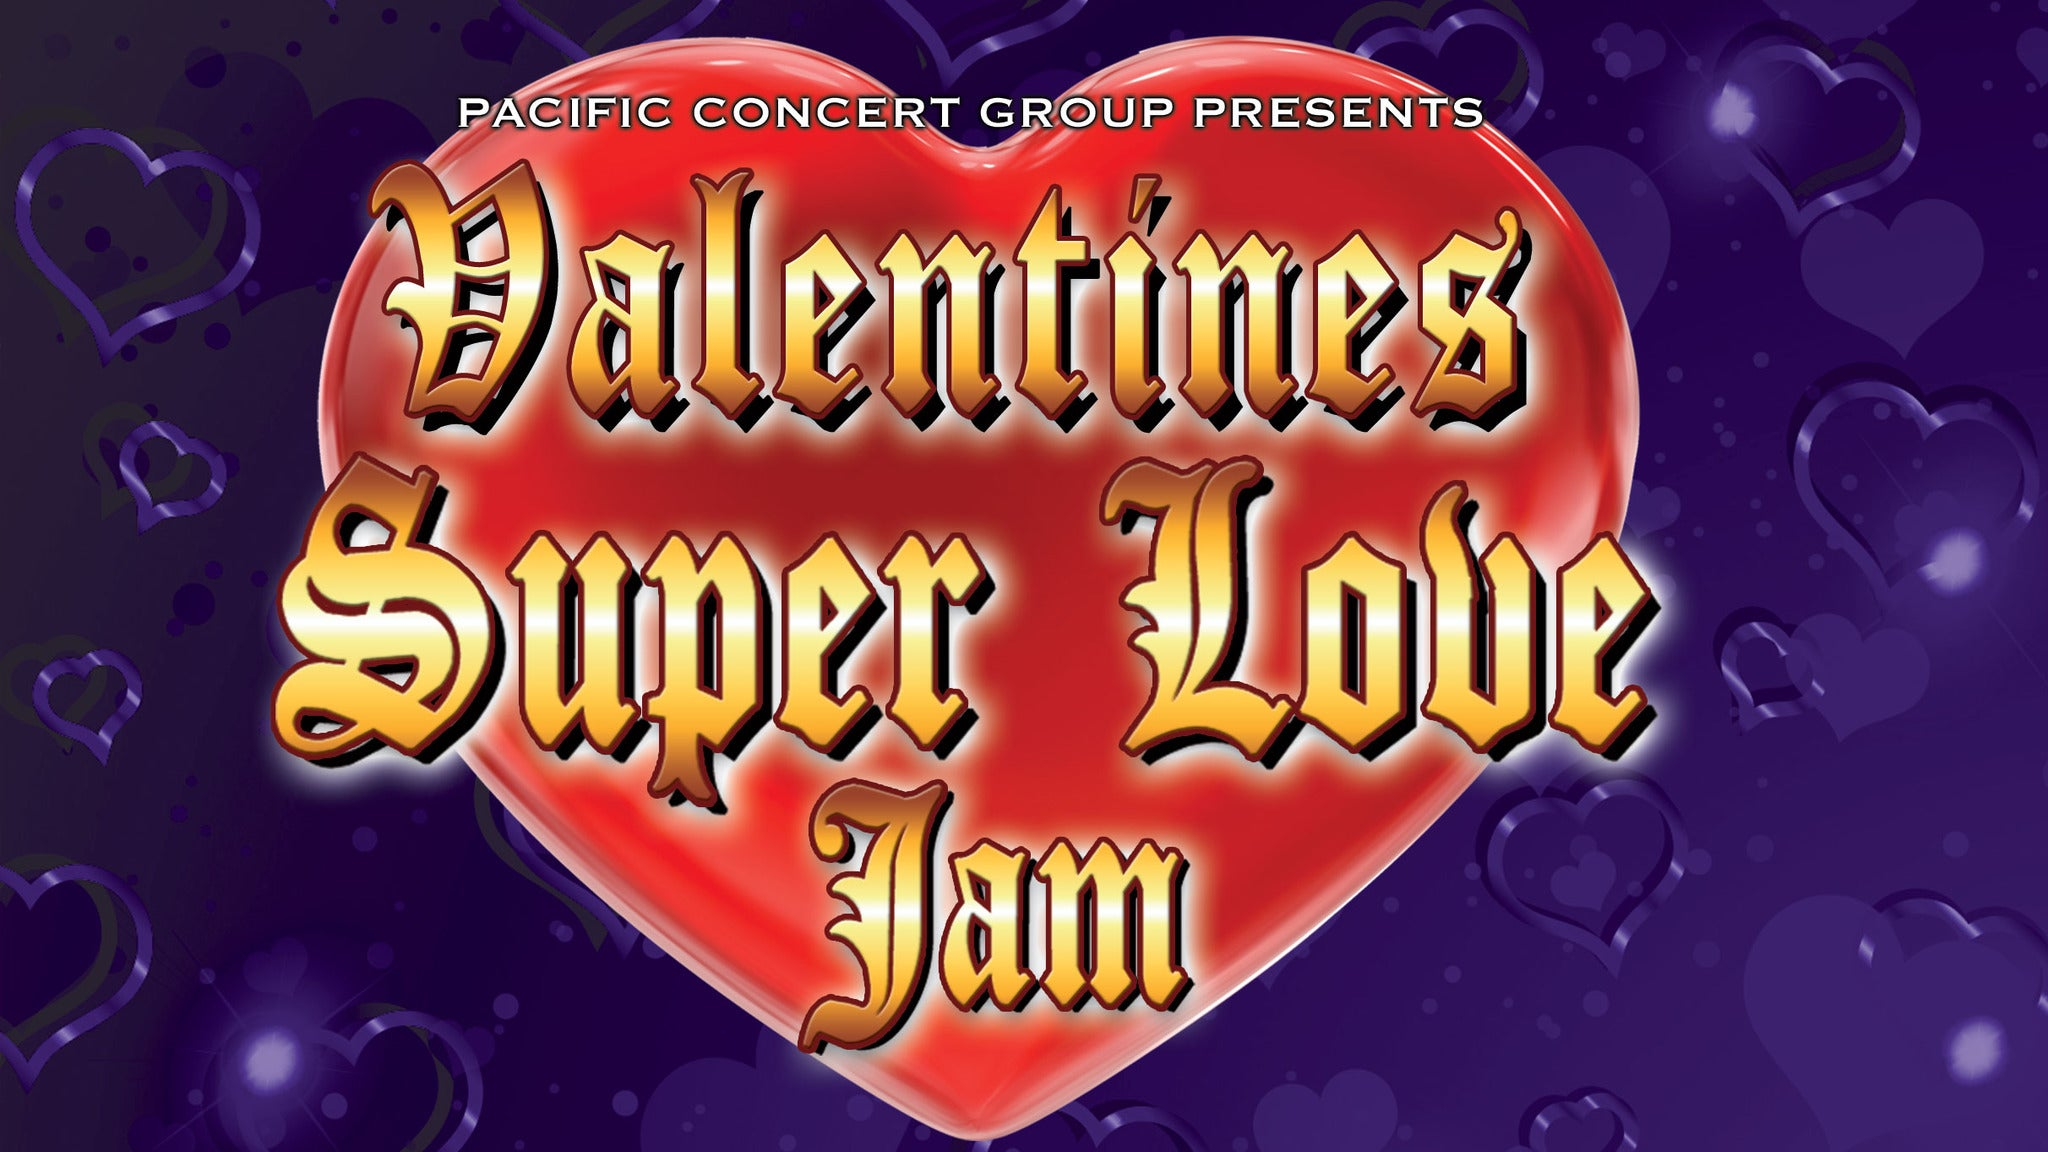 Valentines Super Love Jam at Don Haskins Center